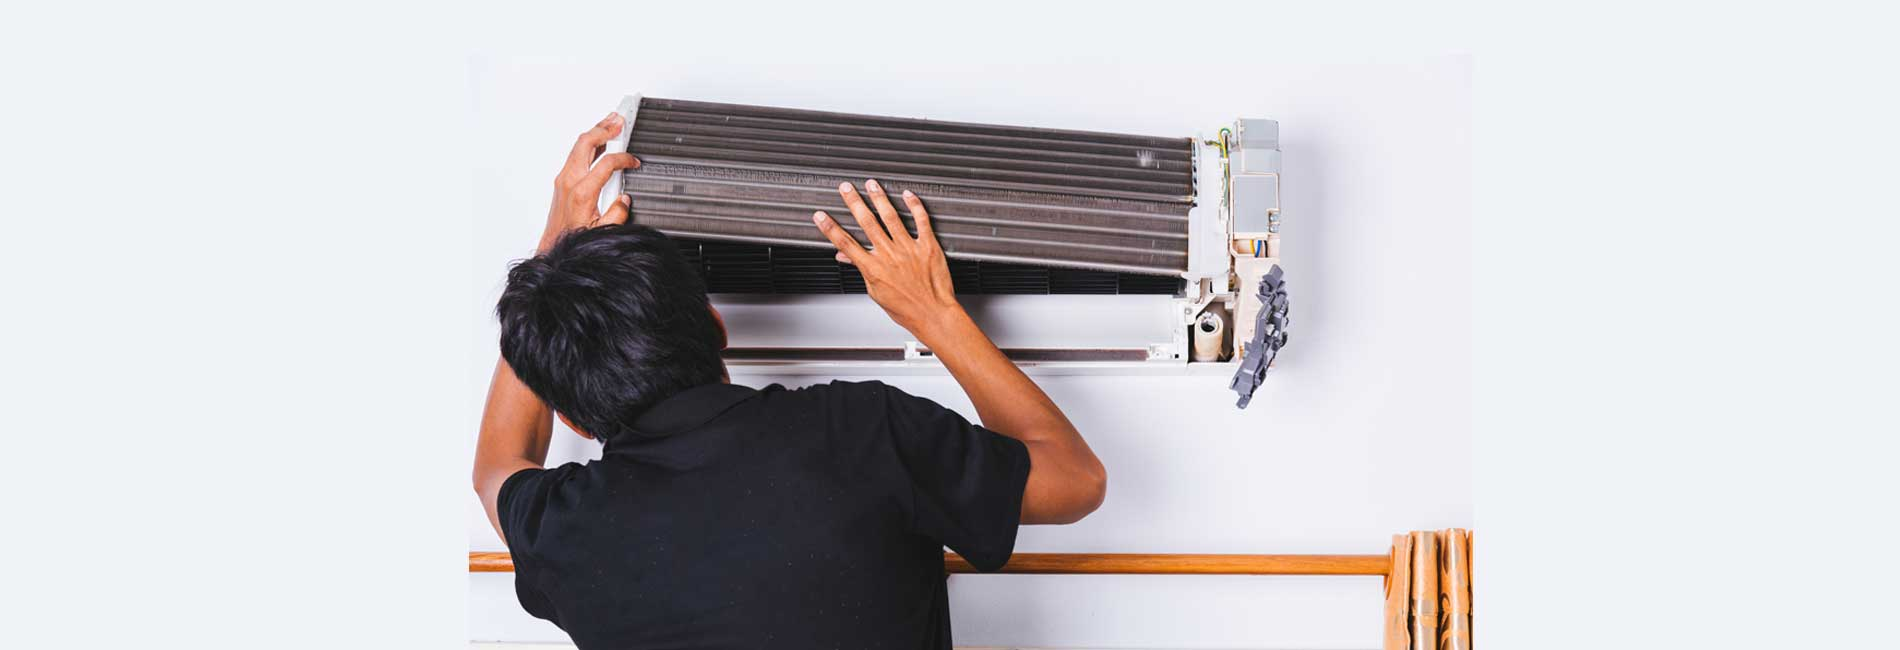 Air Condition Repair in thandalam